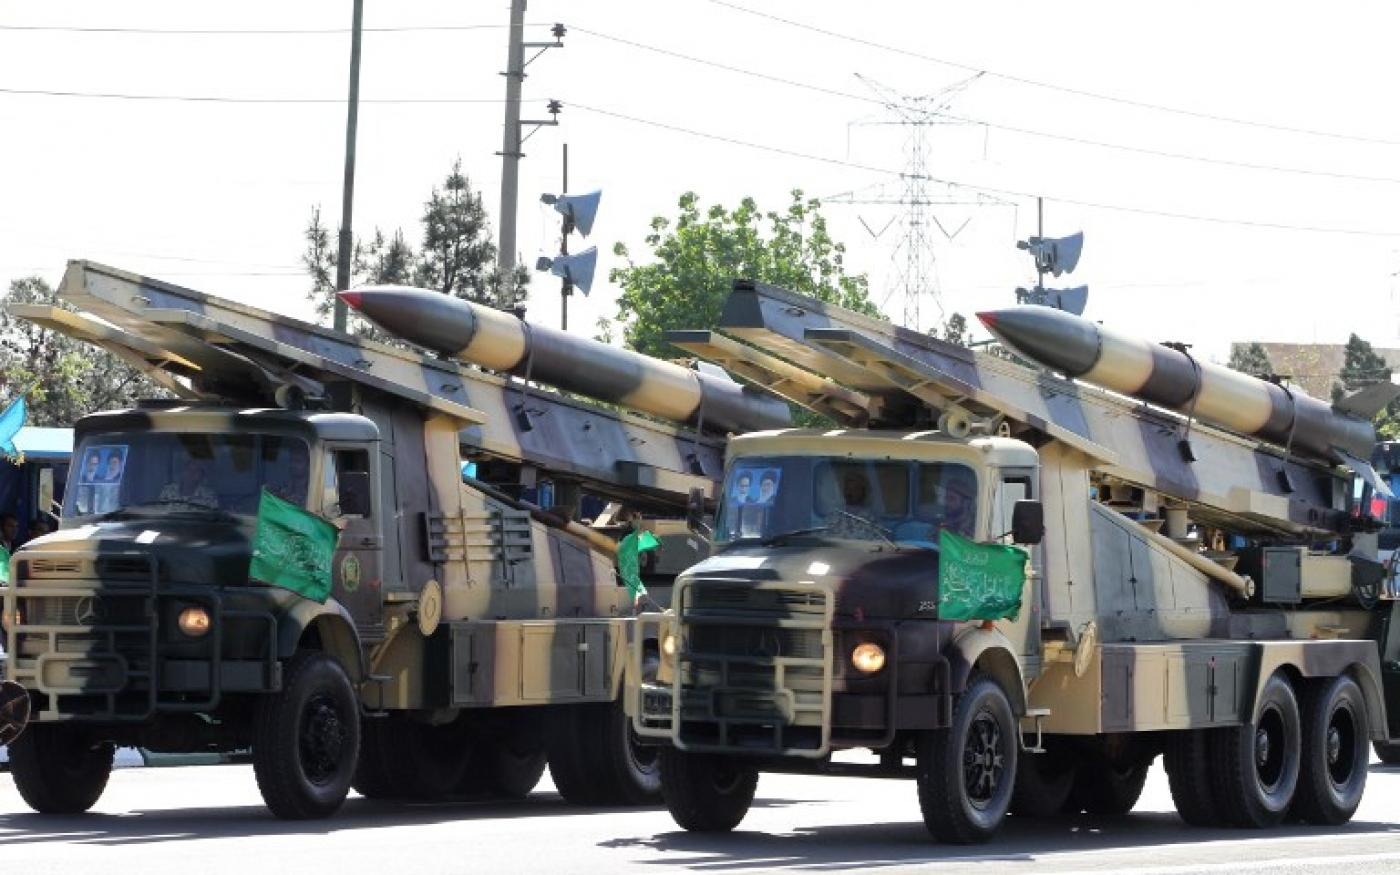 Iran says US bases and aircraft carriers within range of its missiles